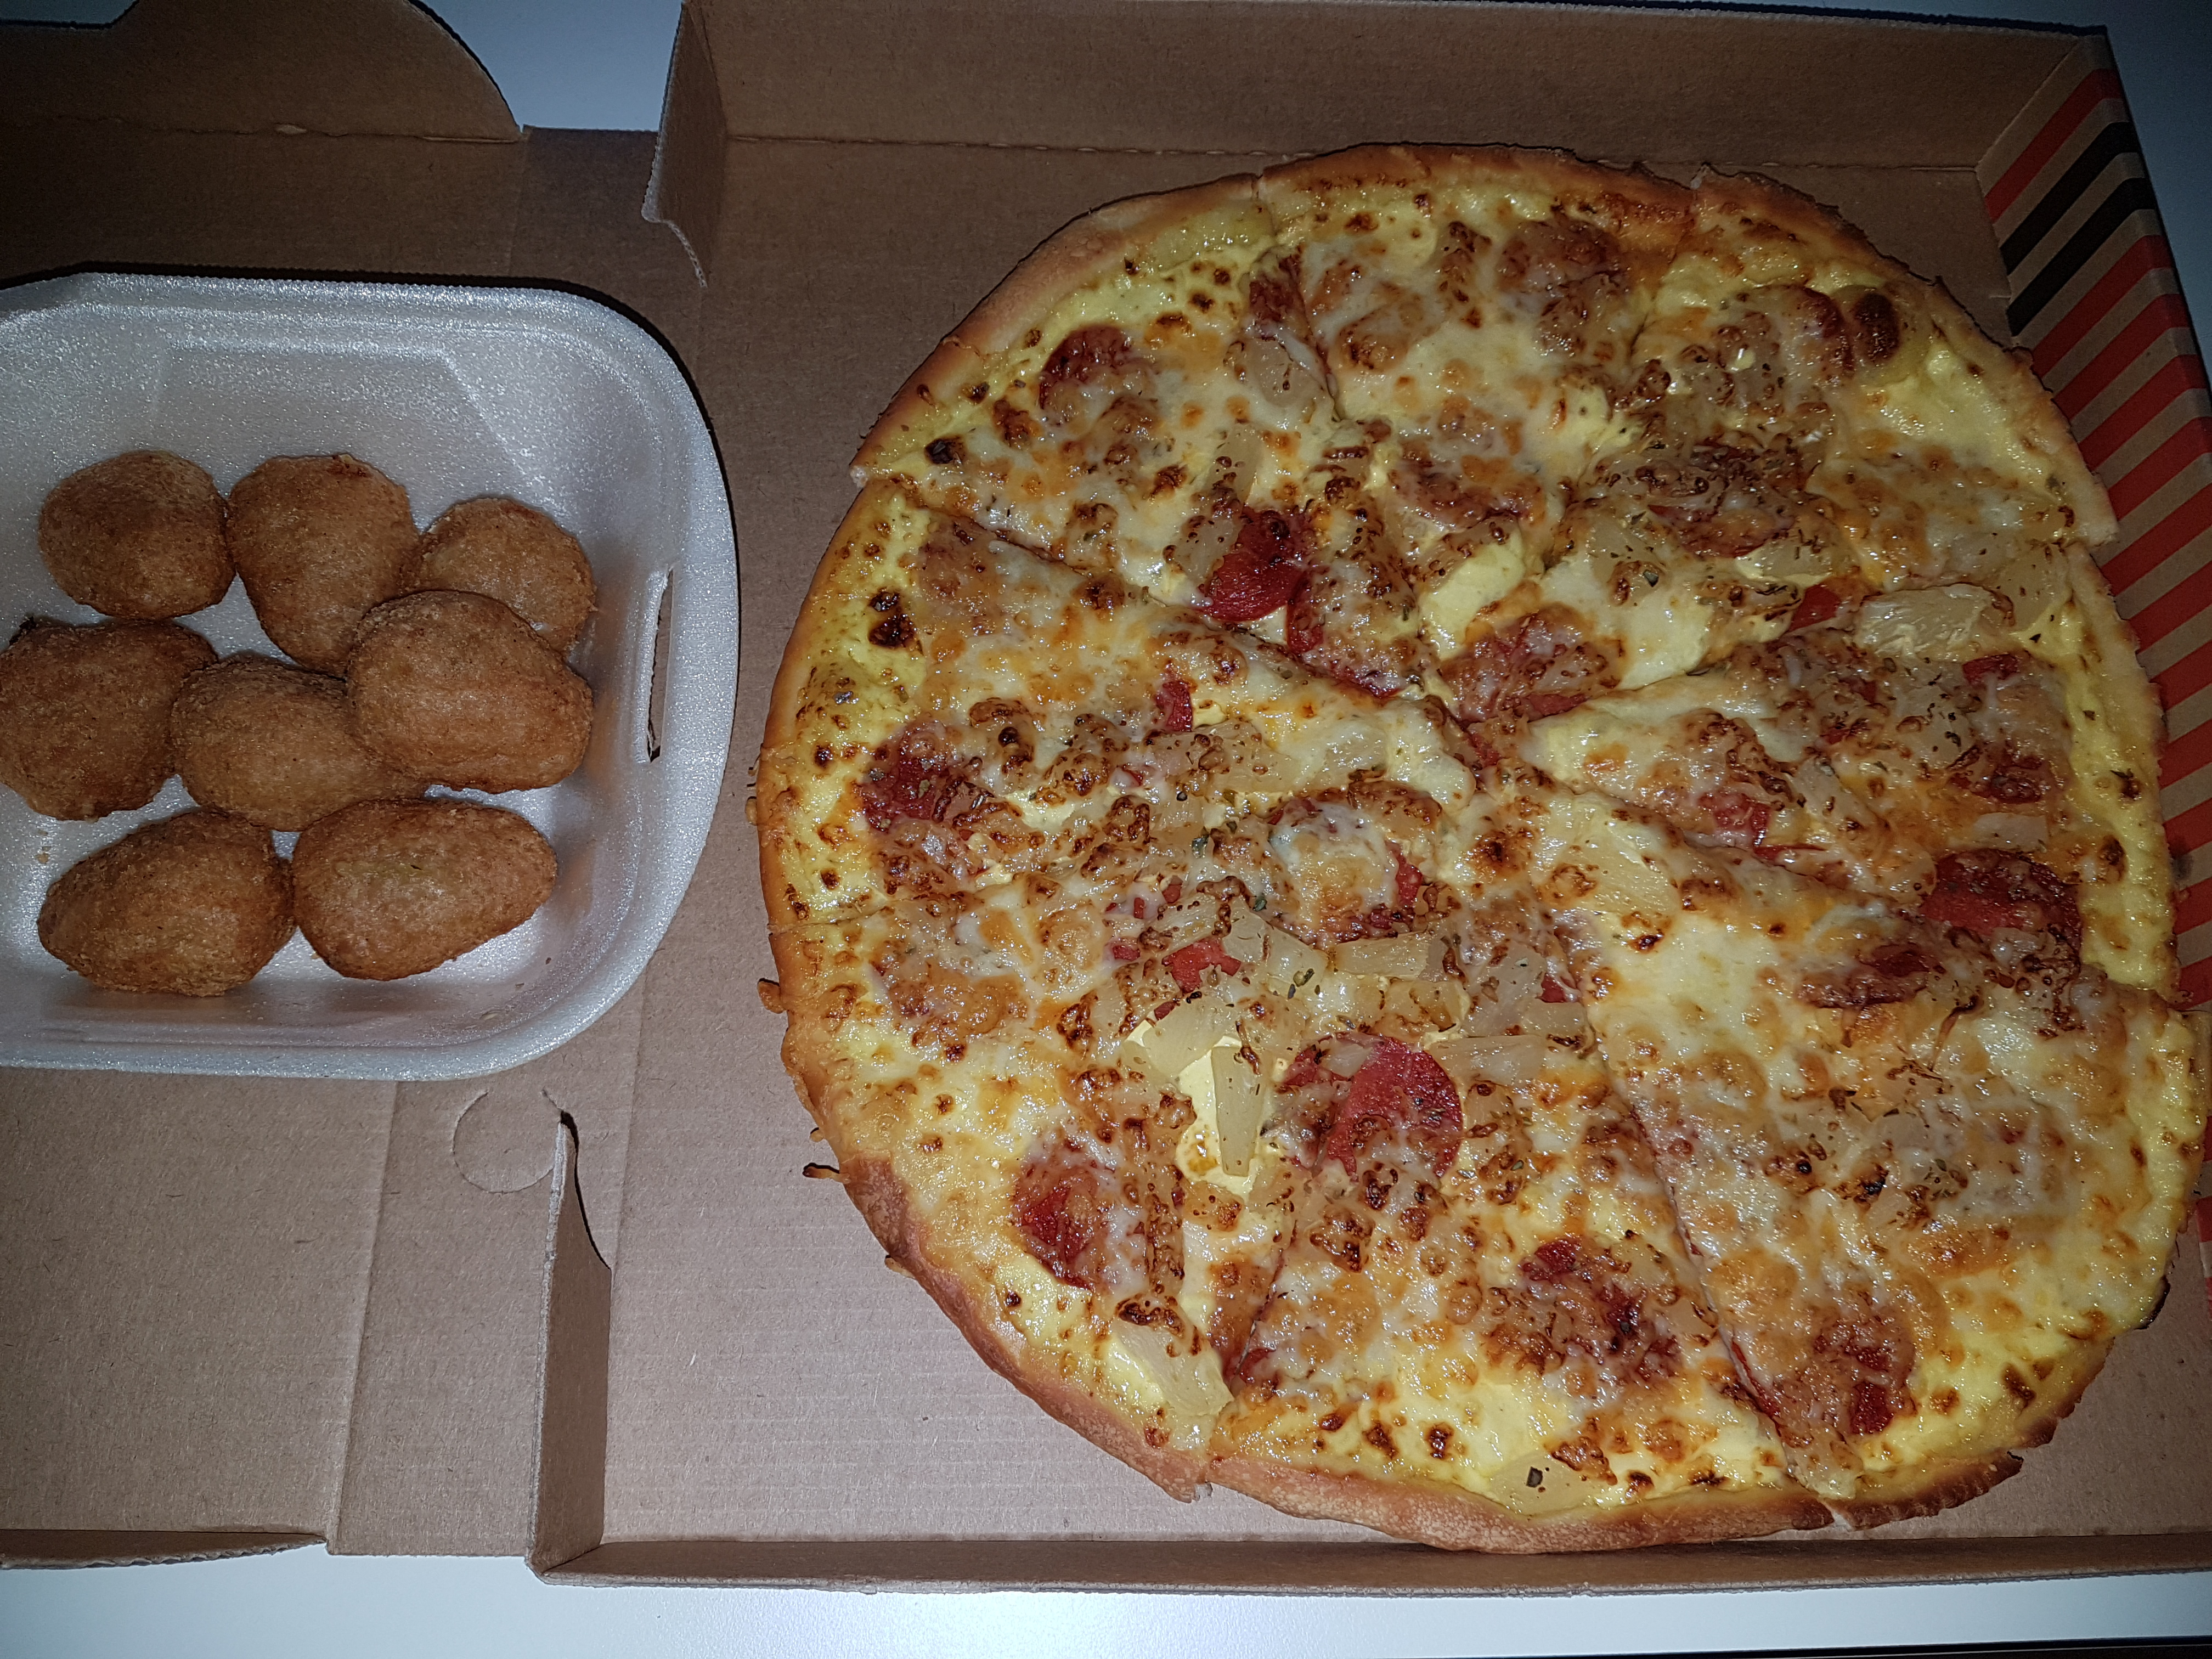 http://foodloader.net/Holz_2018-09-09_Pizza_und_Chili_Cheese_Nuggets.jpg